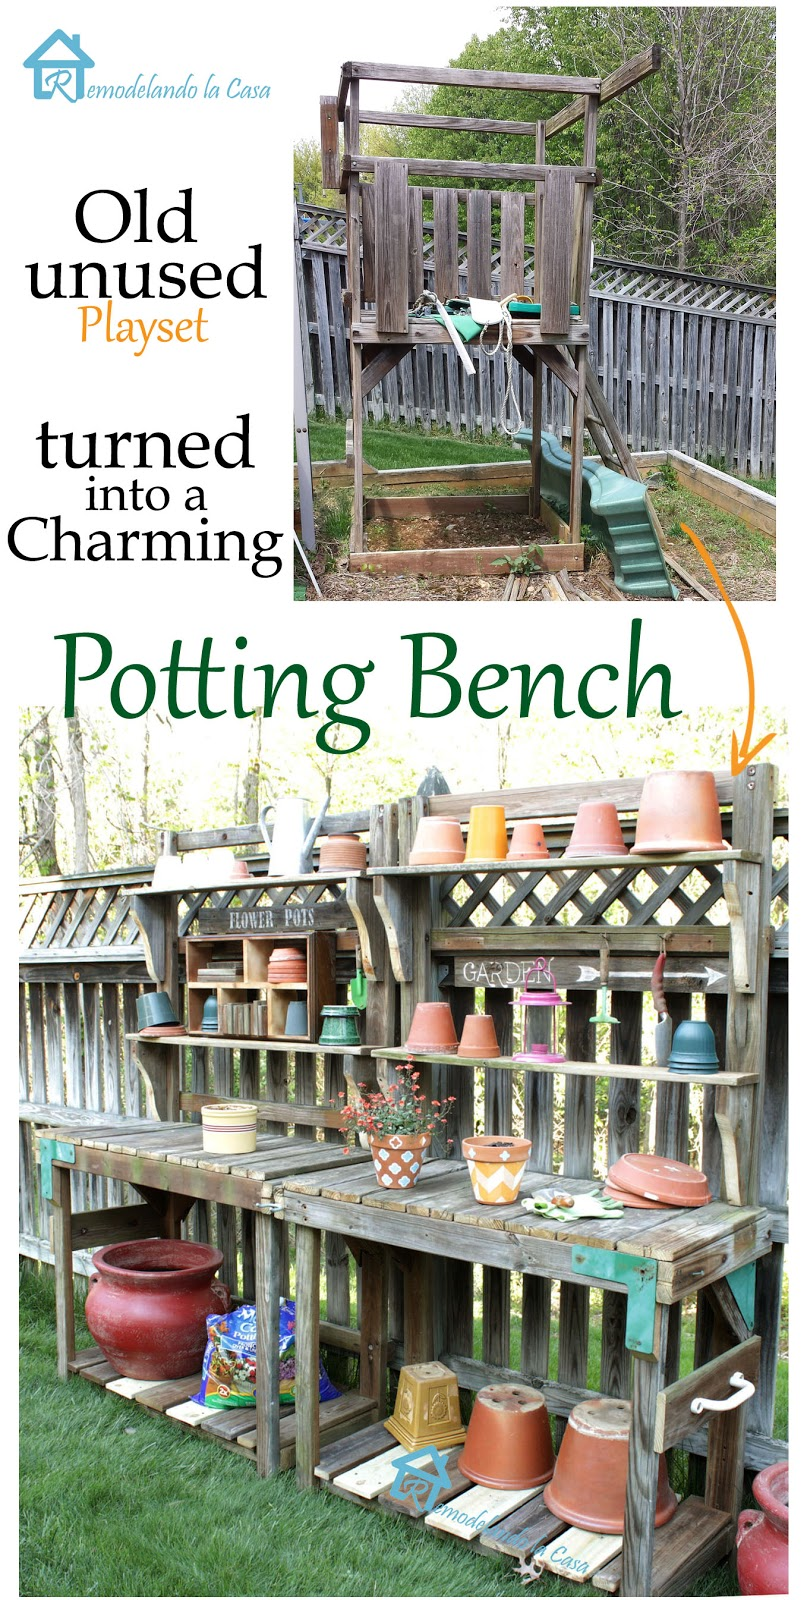 repurpose an old playset into a potting bench